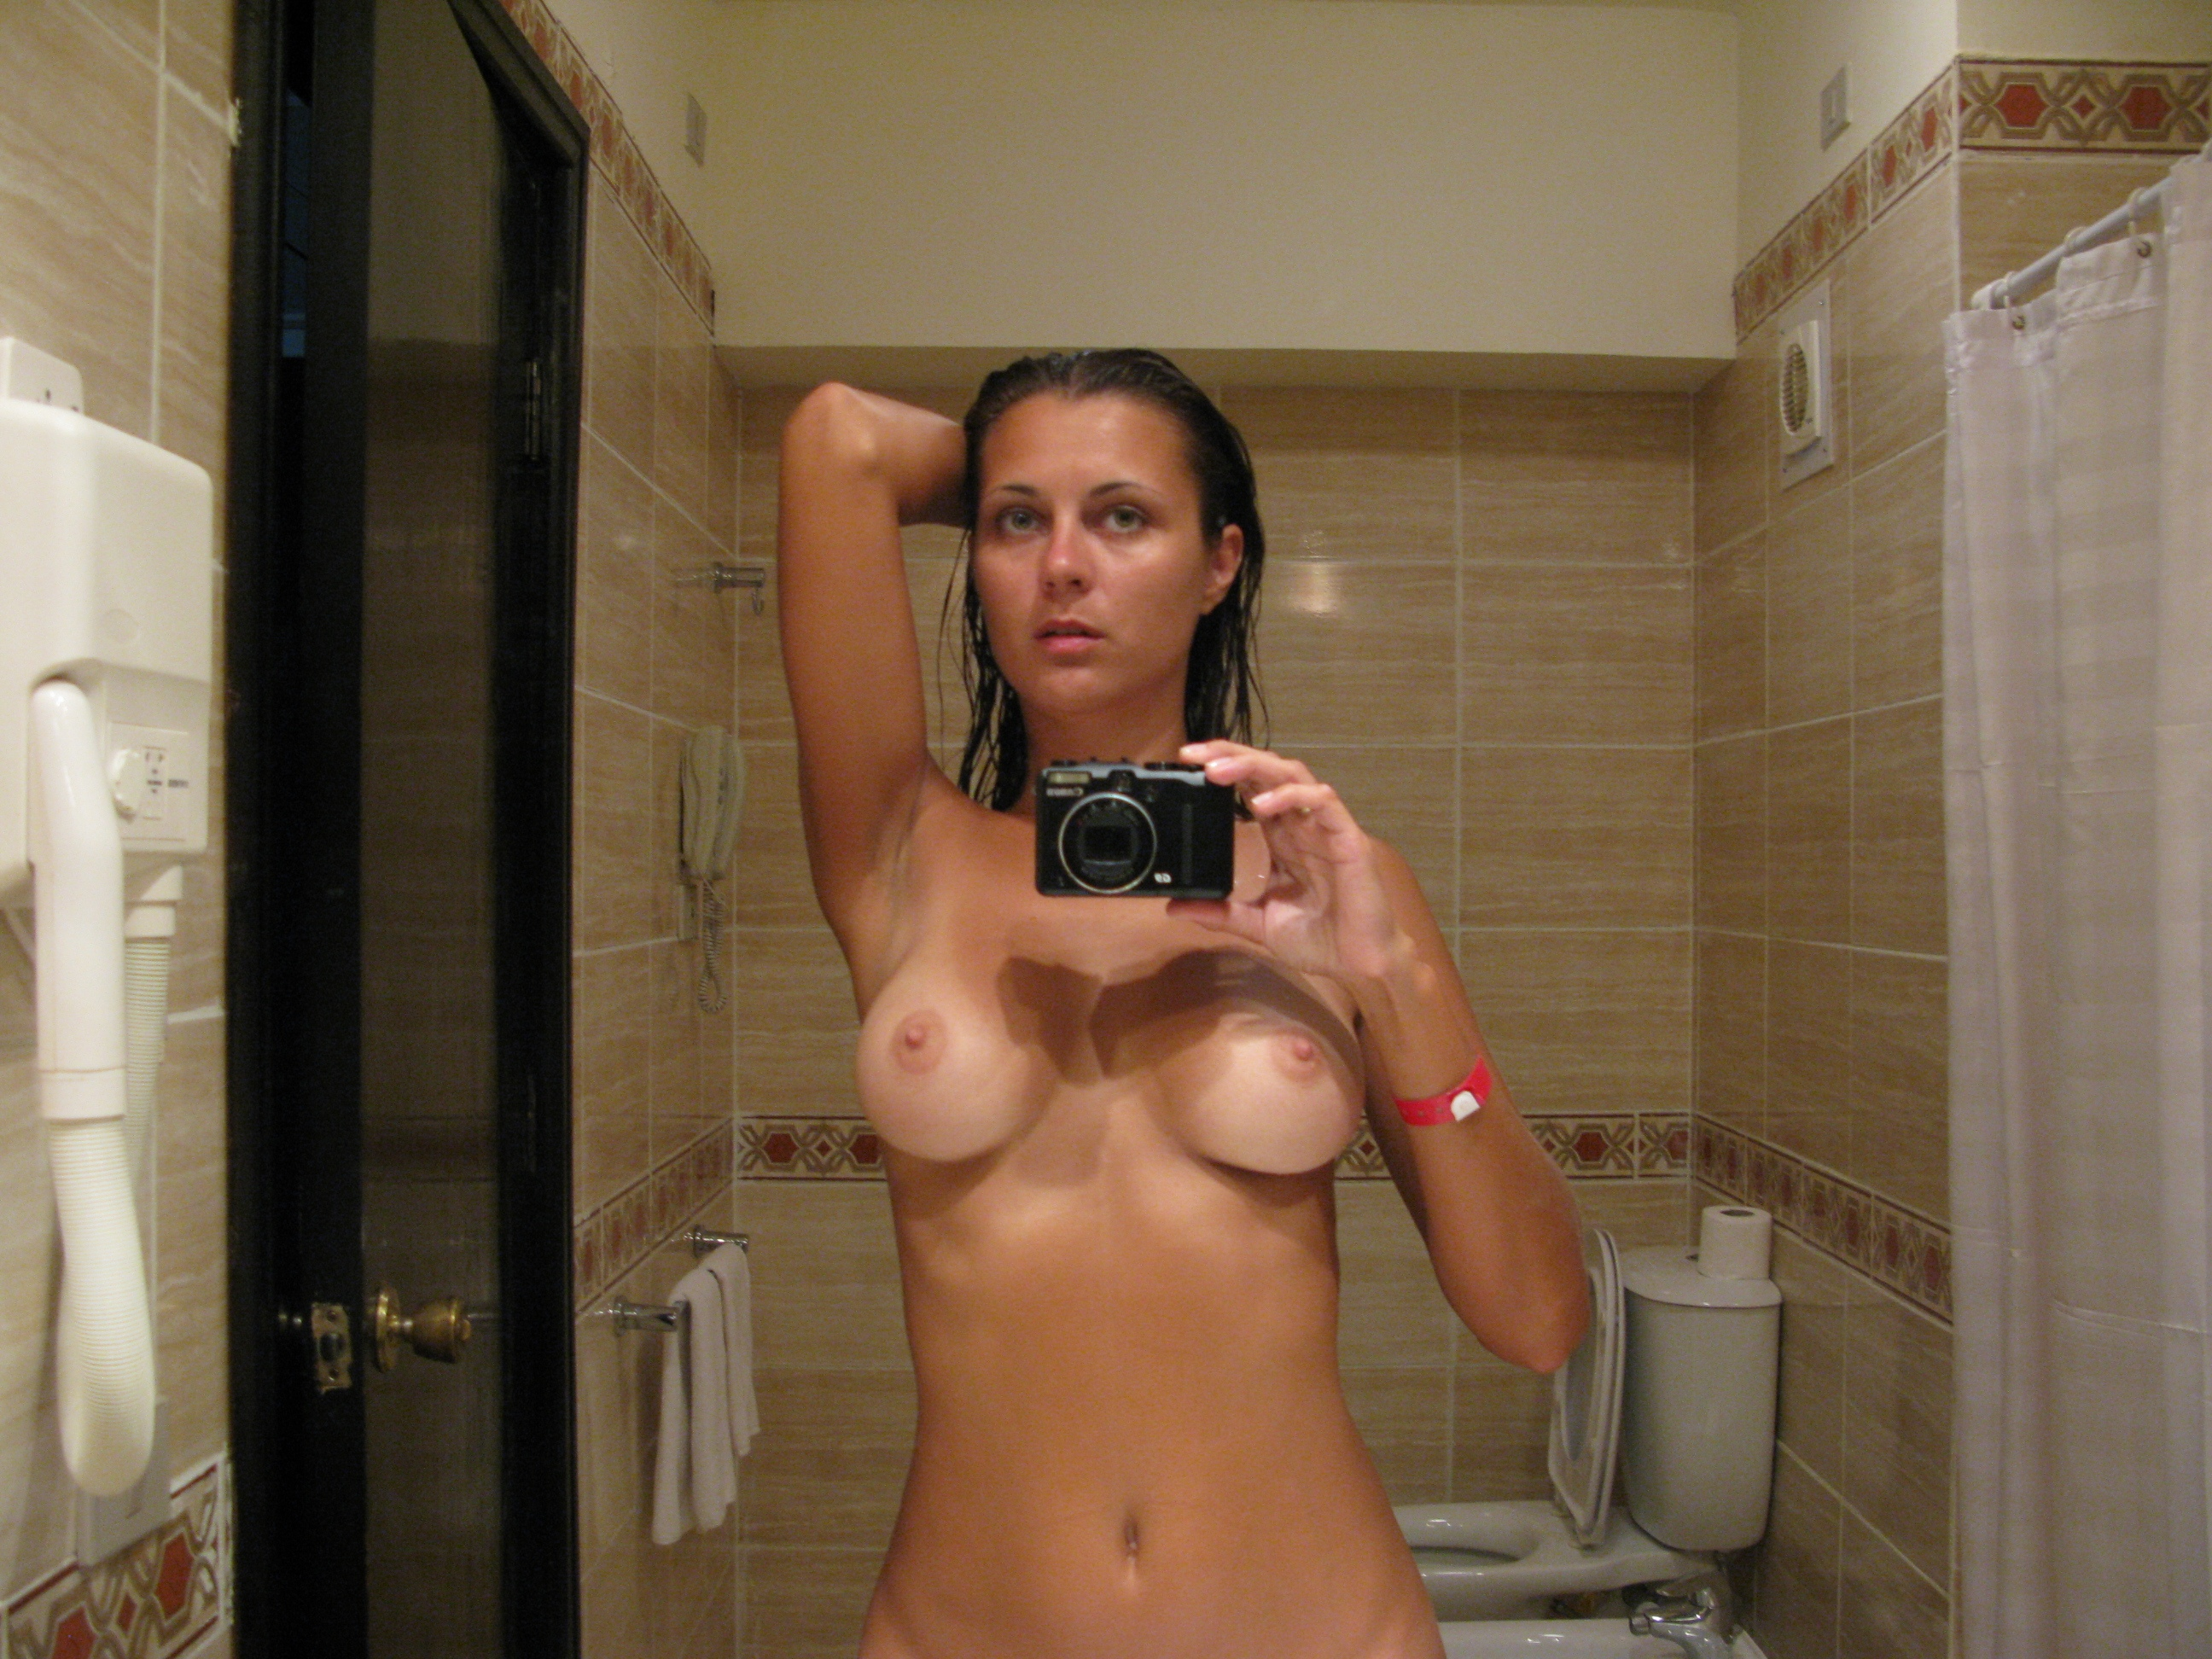 female amateur nude Perfect